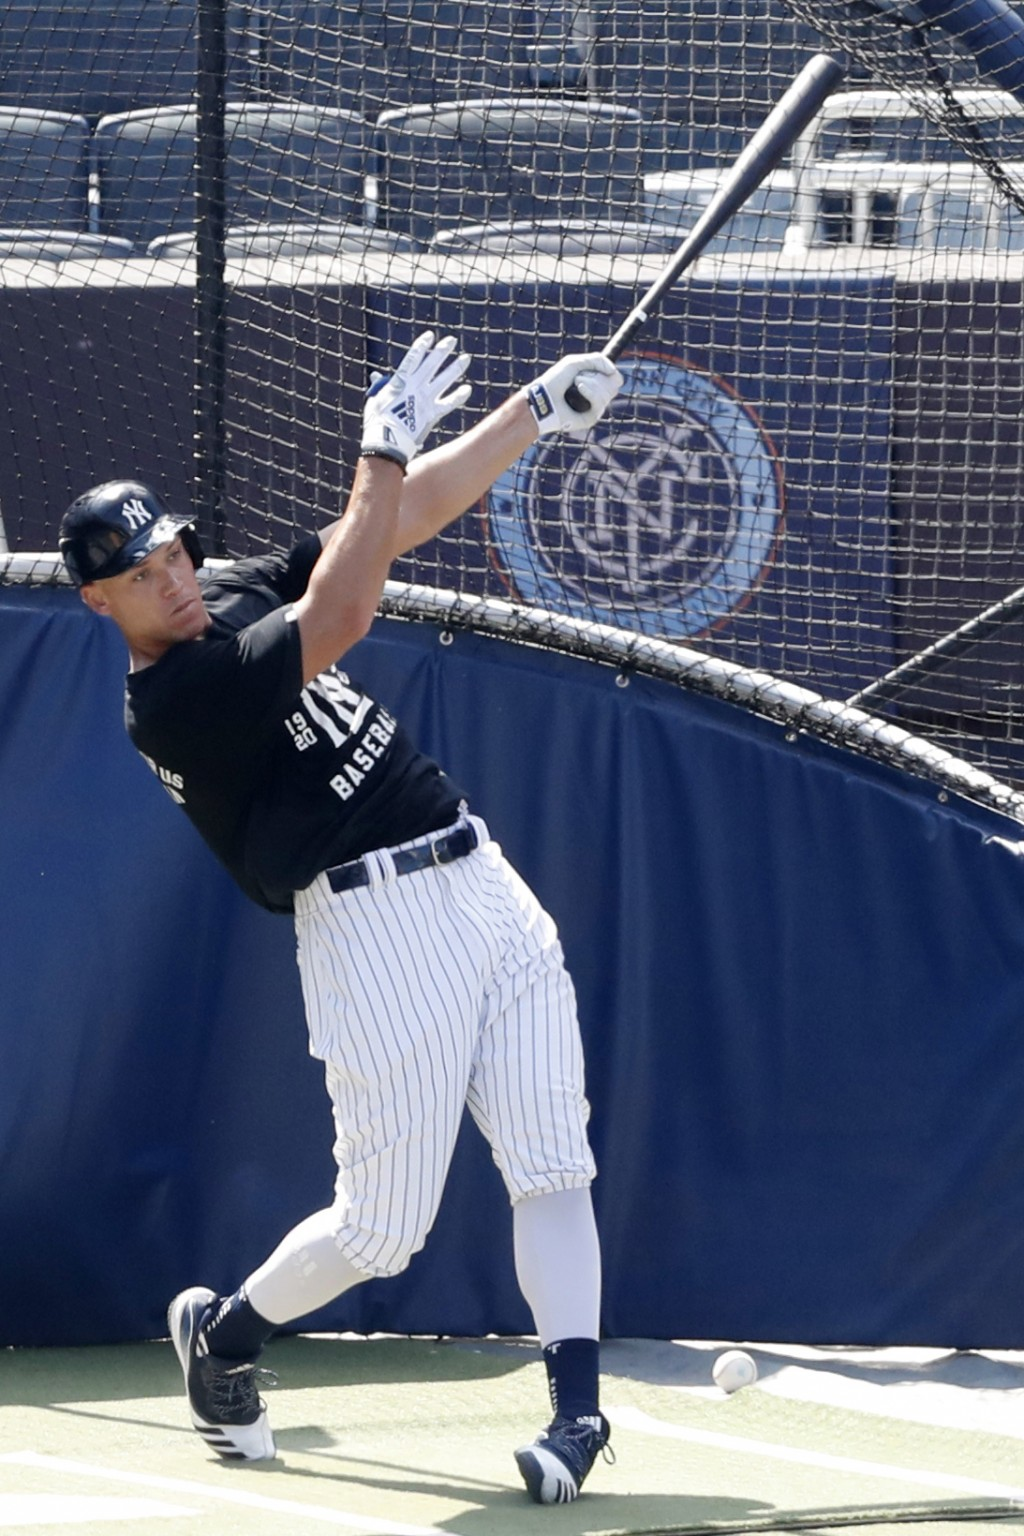 New York Yankees' Aaron Judge bats in the cage at Yankees summer baseball training camp, Wednesday, July 15, 2020, at Yankee Stadium in New York. Judg...